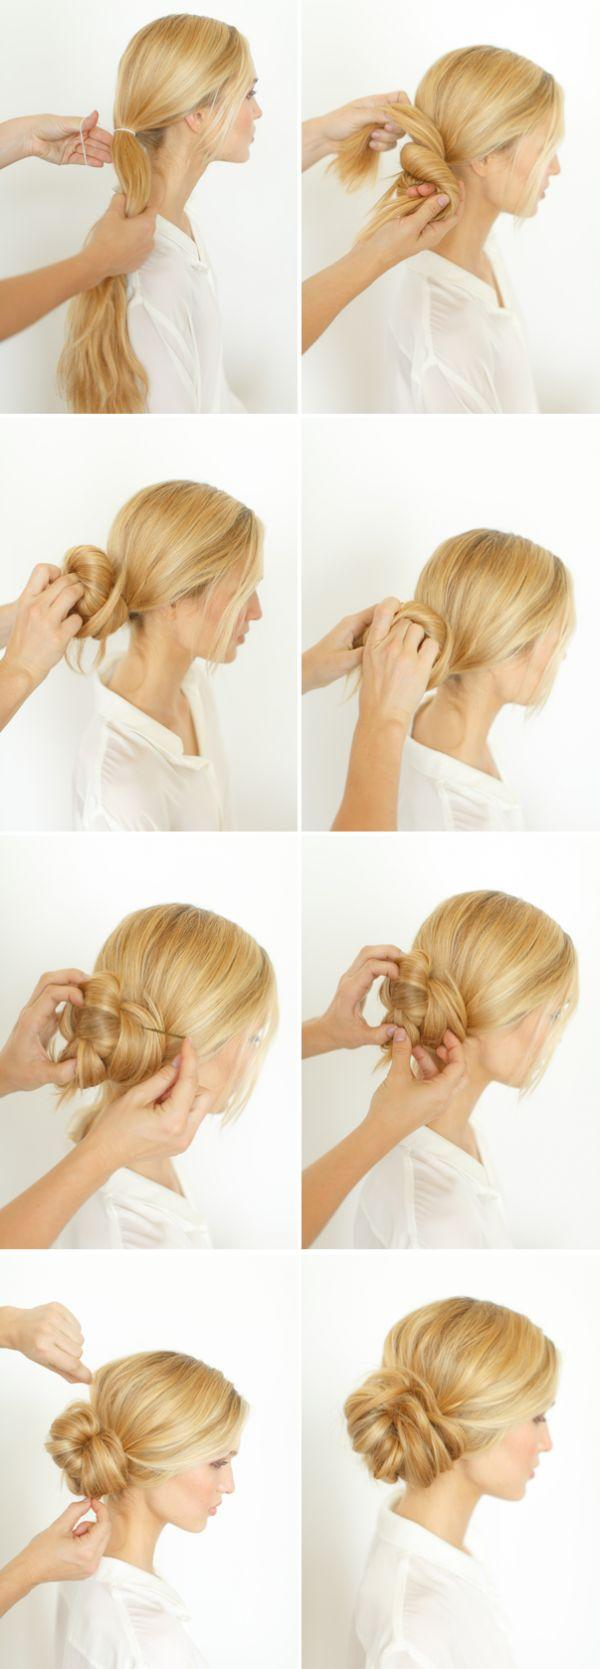 Wedding - 12 Easy DIY Hairstyles That Will Not Take You More Than 5 Minutes